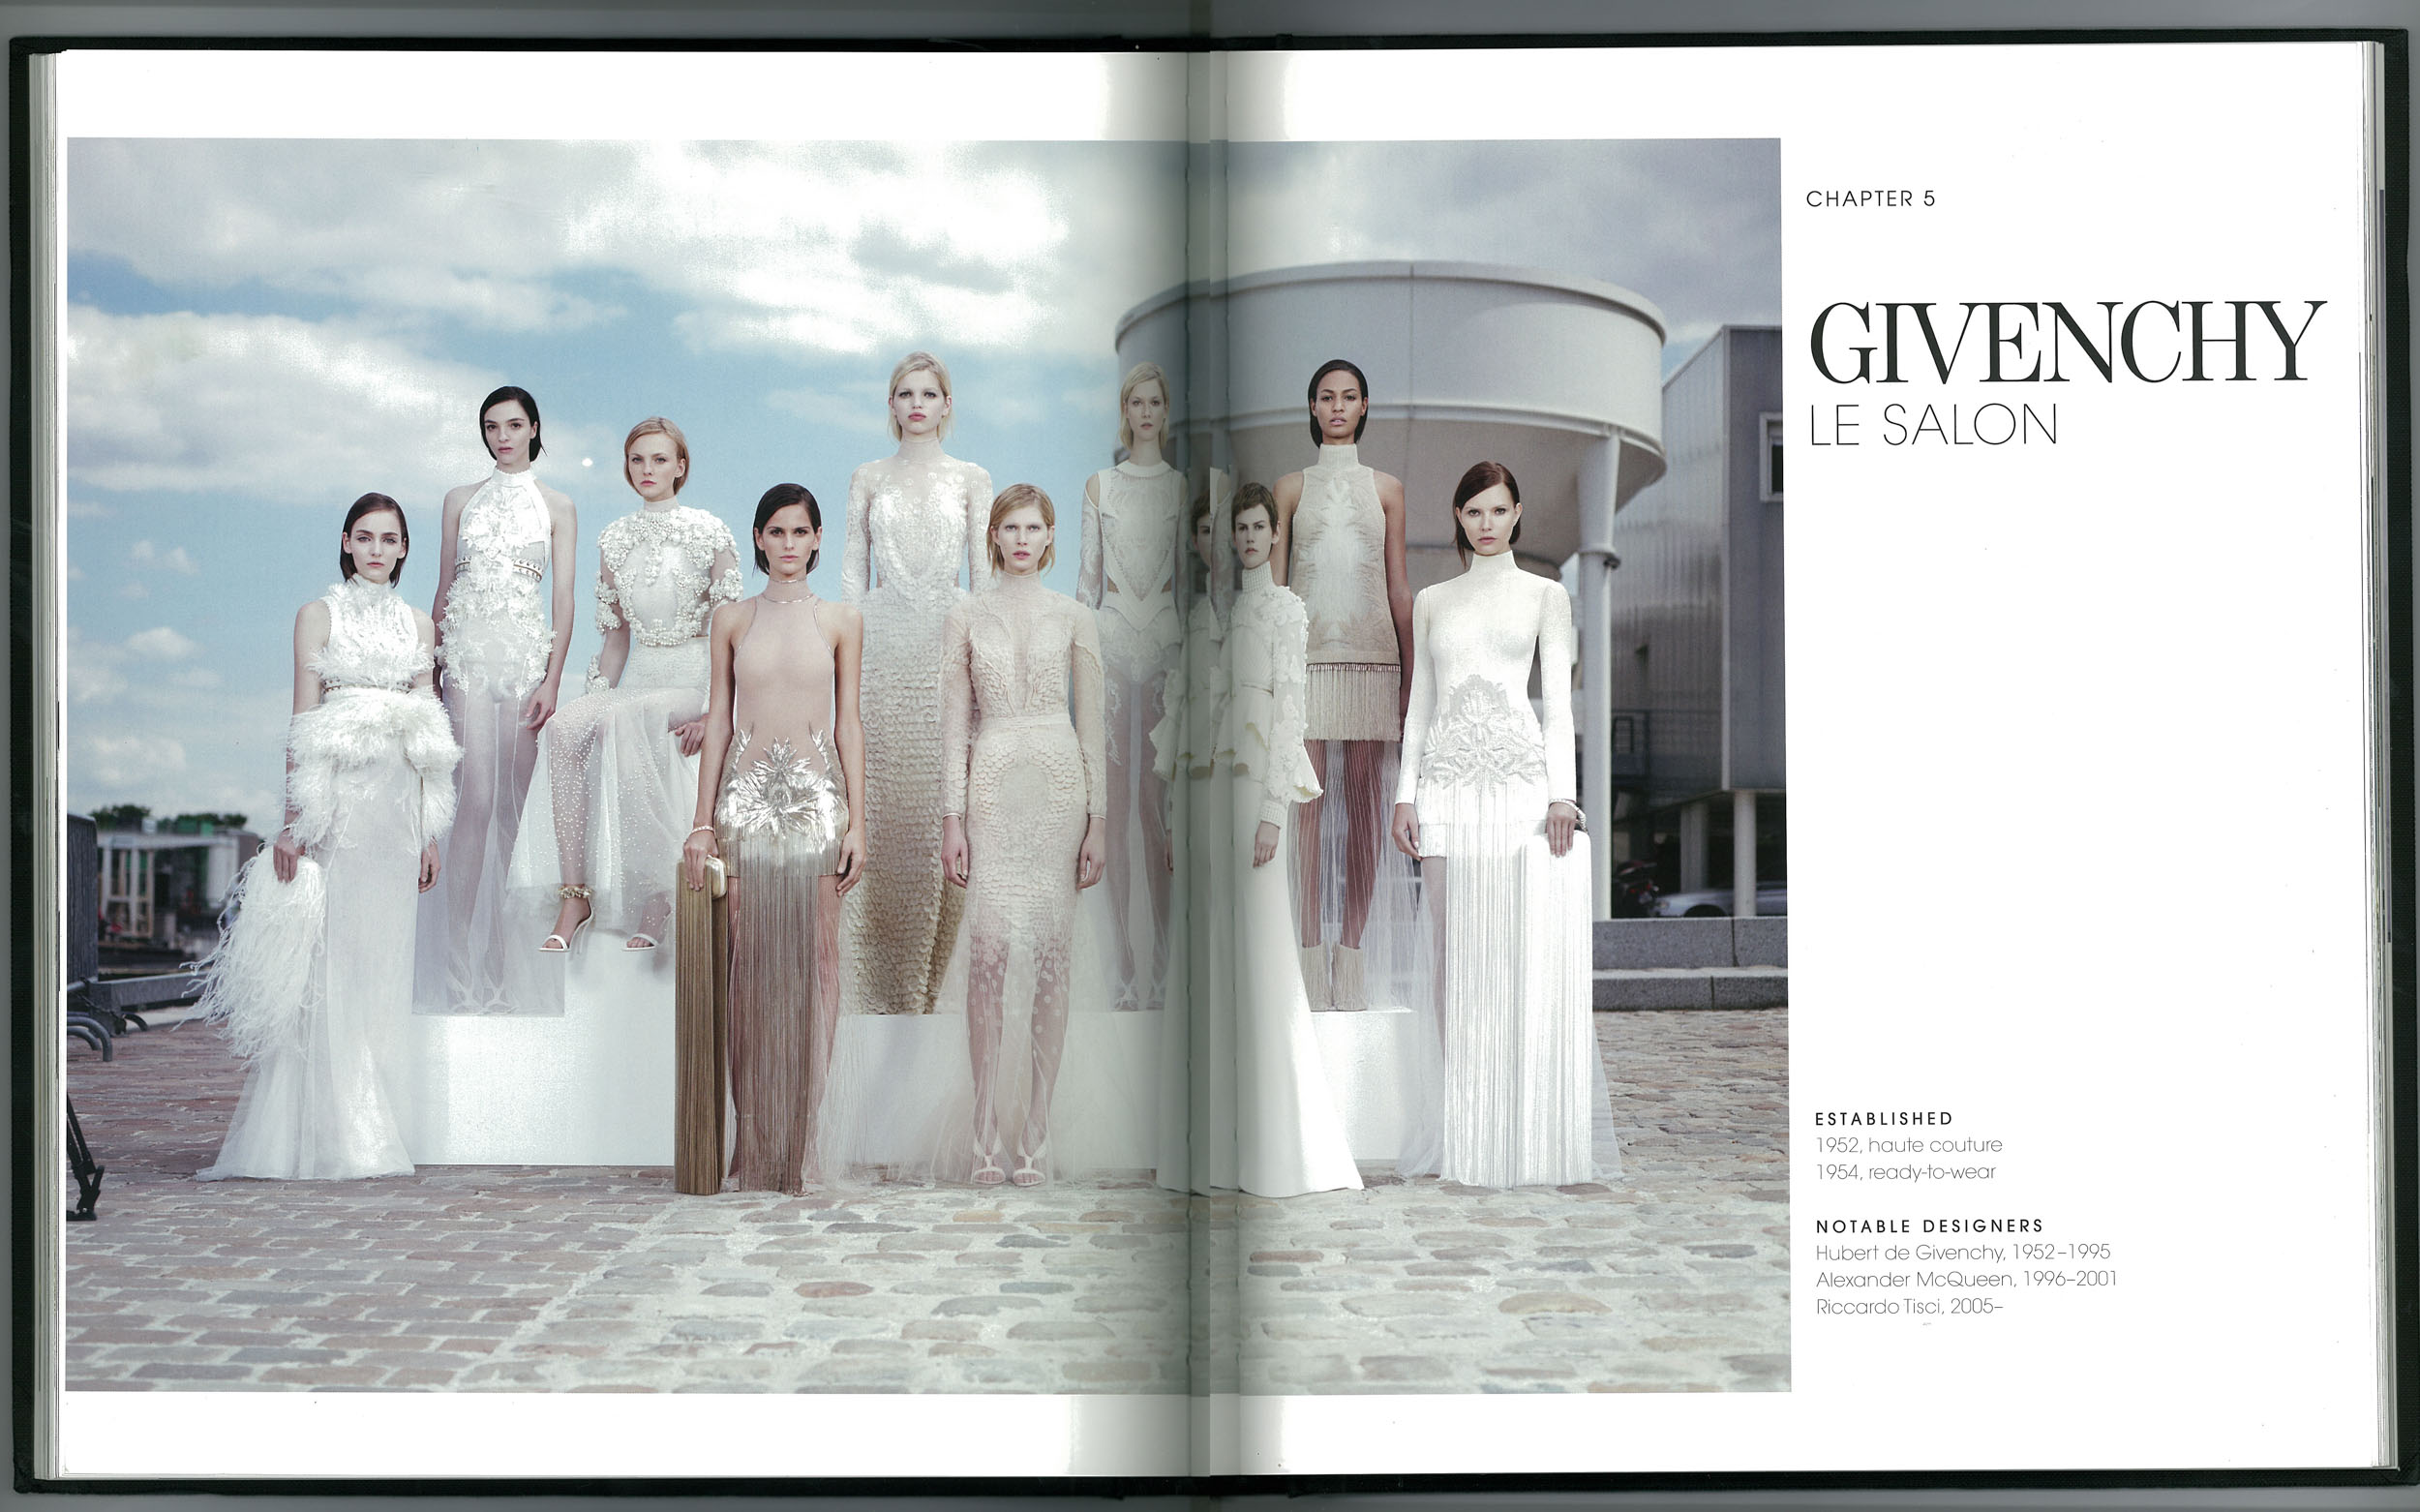 Cheuk-Yin To - Givenchy - The New French Couture - HarperCollins 2.jpg